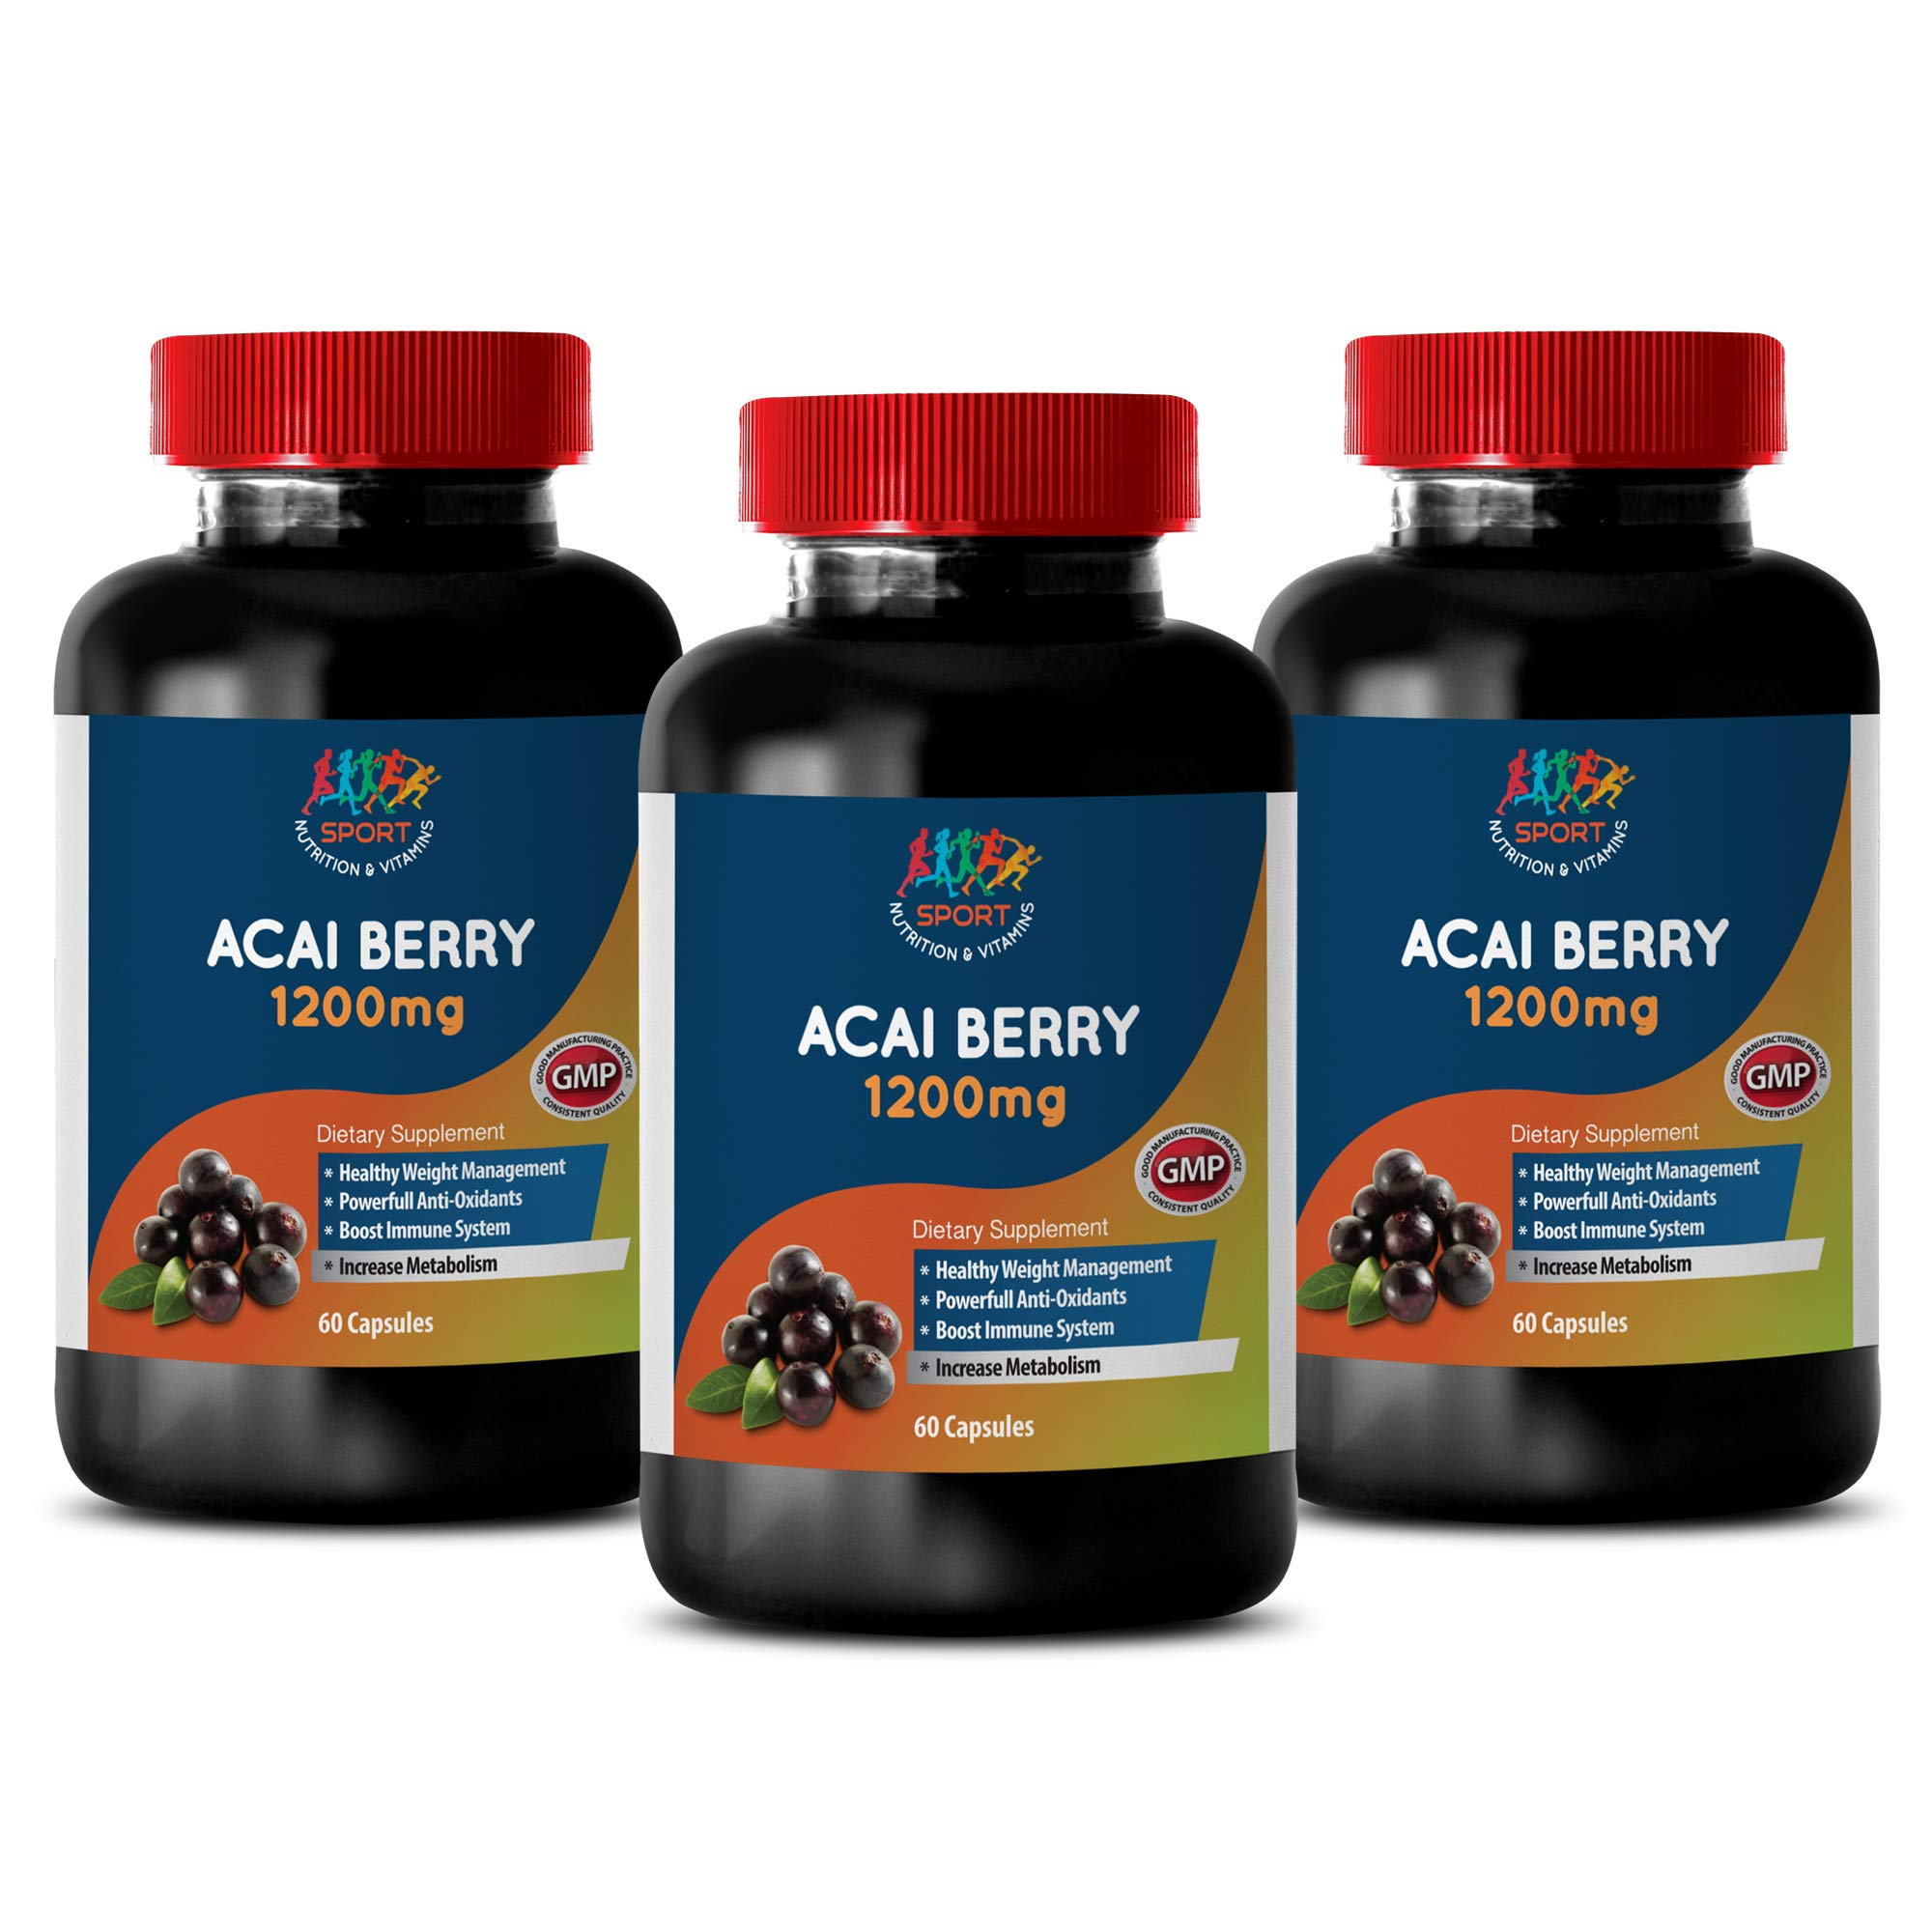 antioxidant for Women - ACAI Berry 1200 mg - Dietary Supplements - Acai - 3 Bottles (180 Capsules)